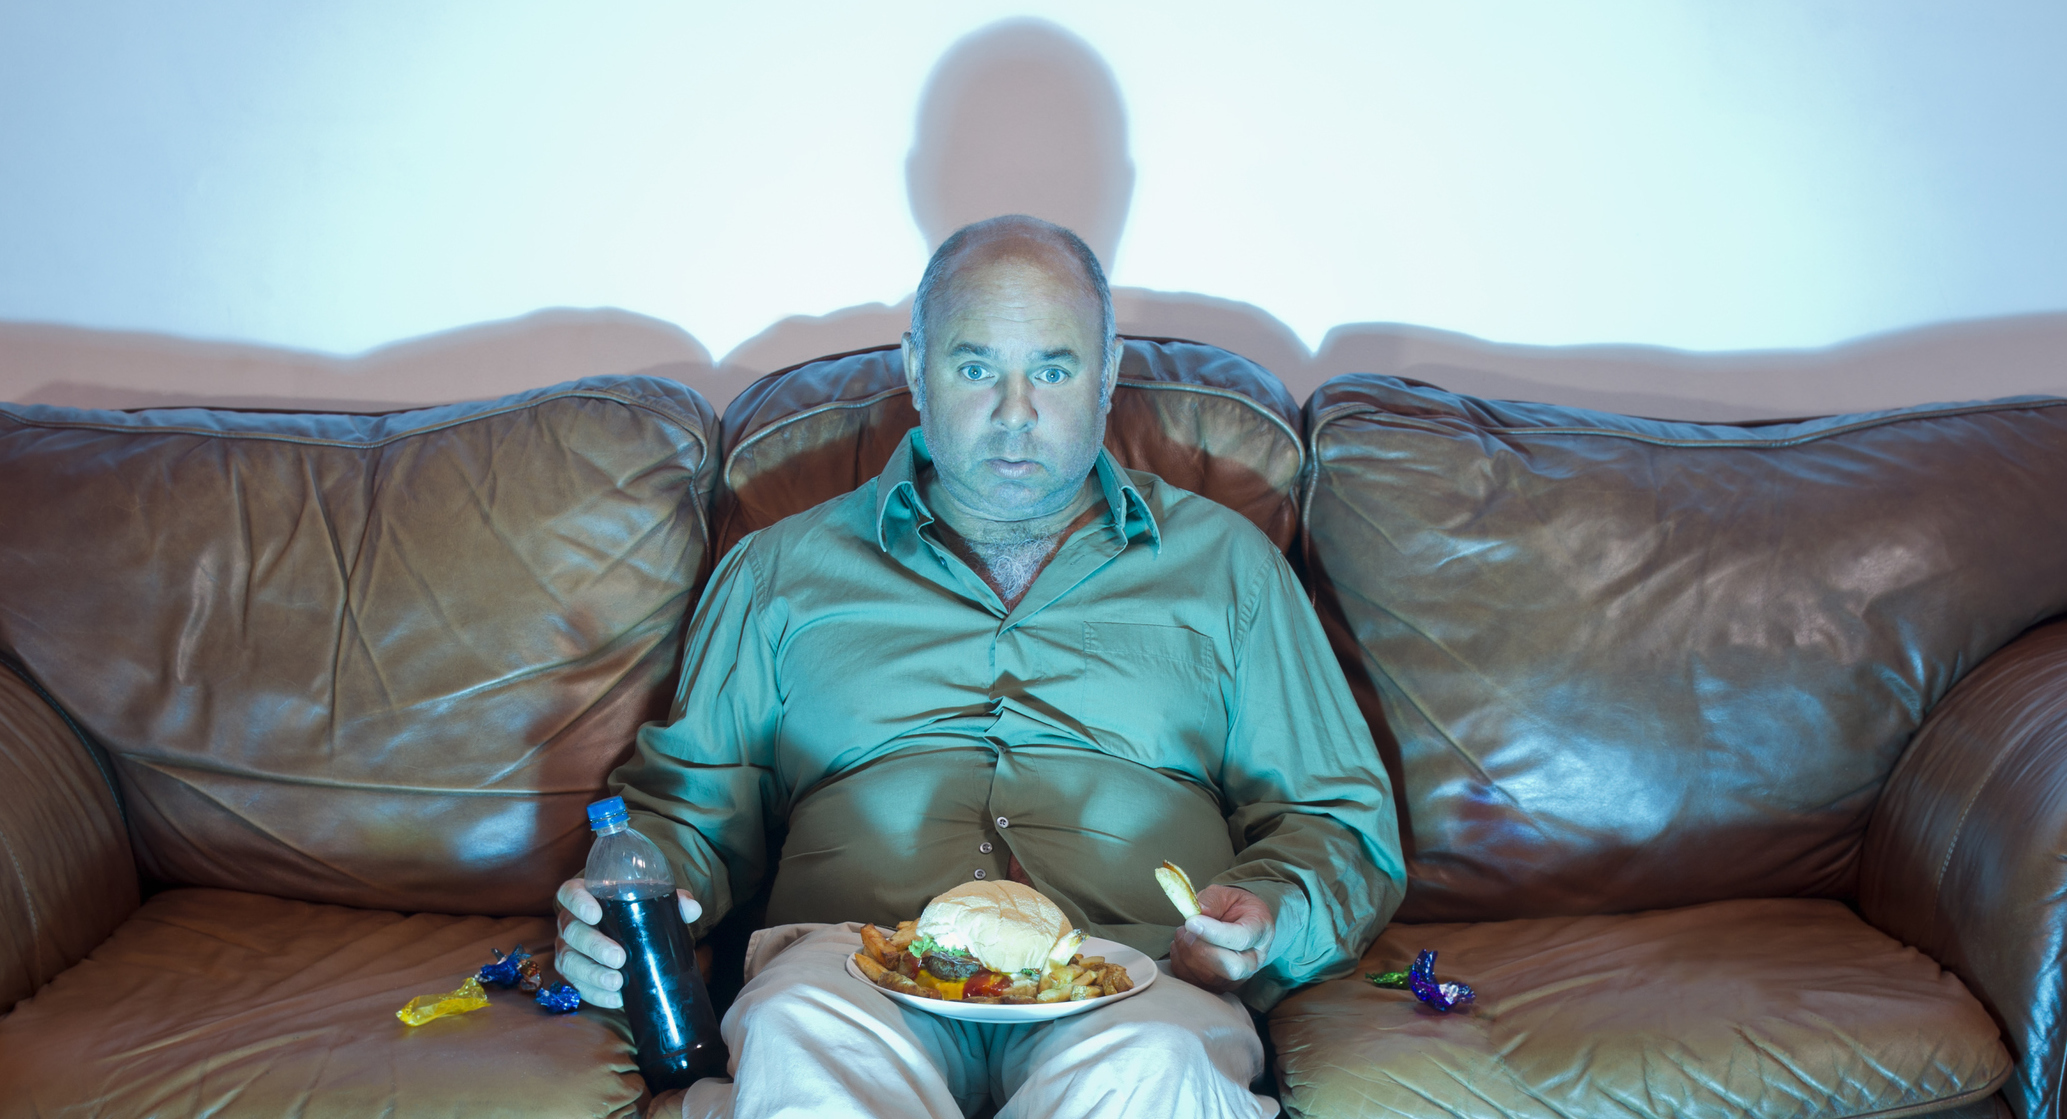 a-mature-overweight-man-sitting-on-an-old-couch-watching-tv-with-an-unhealthy-meal-of-hamburger-french-fries-and-soda-pop-2.jpg